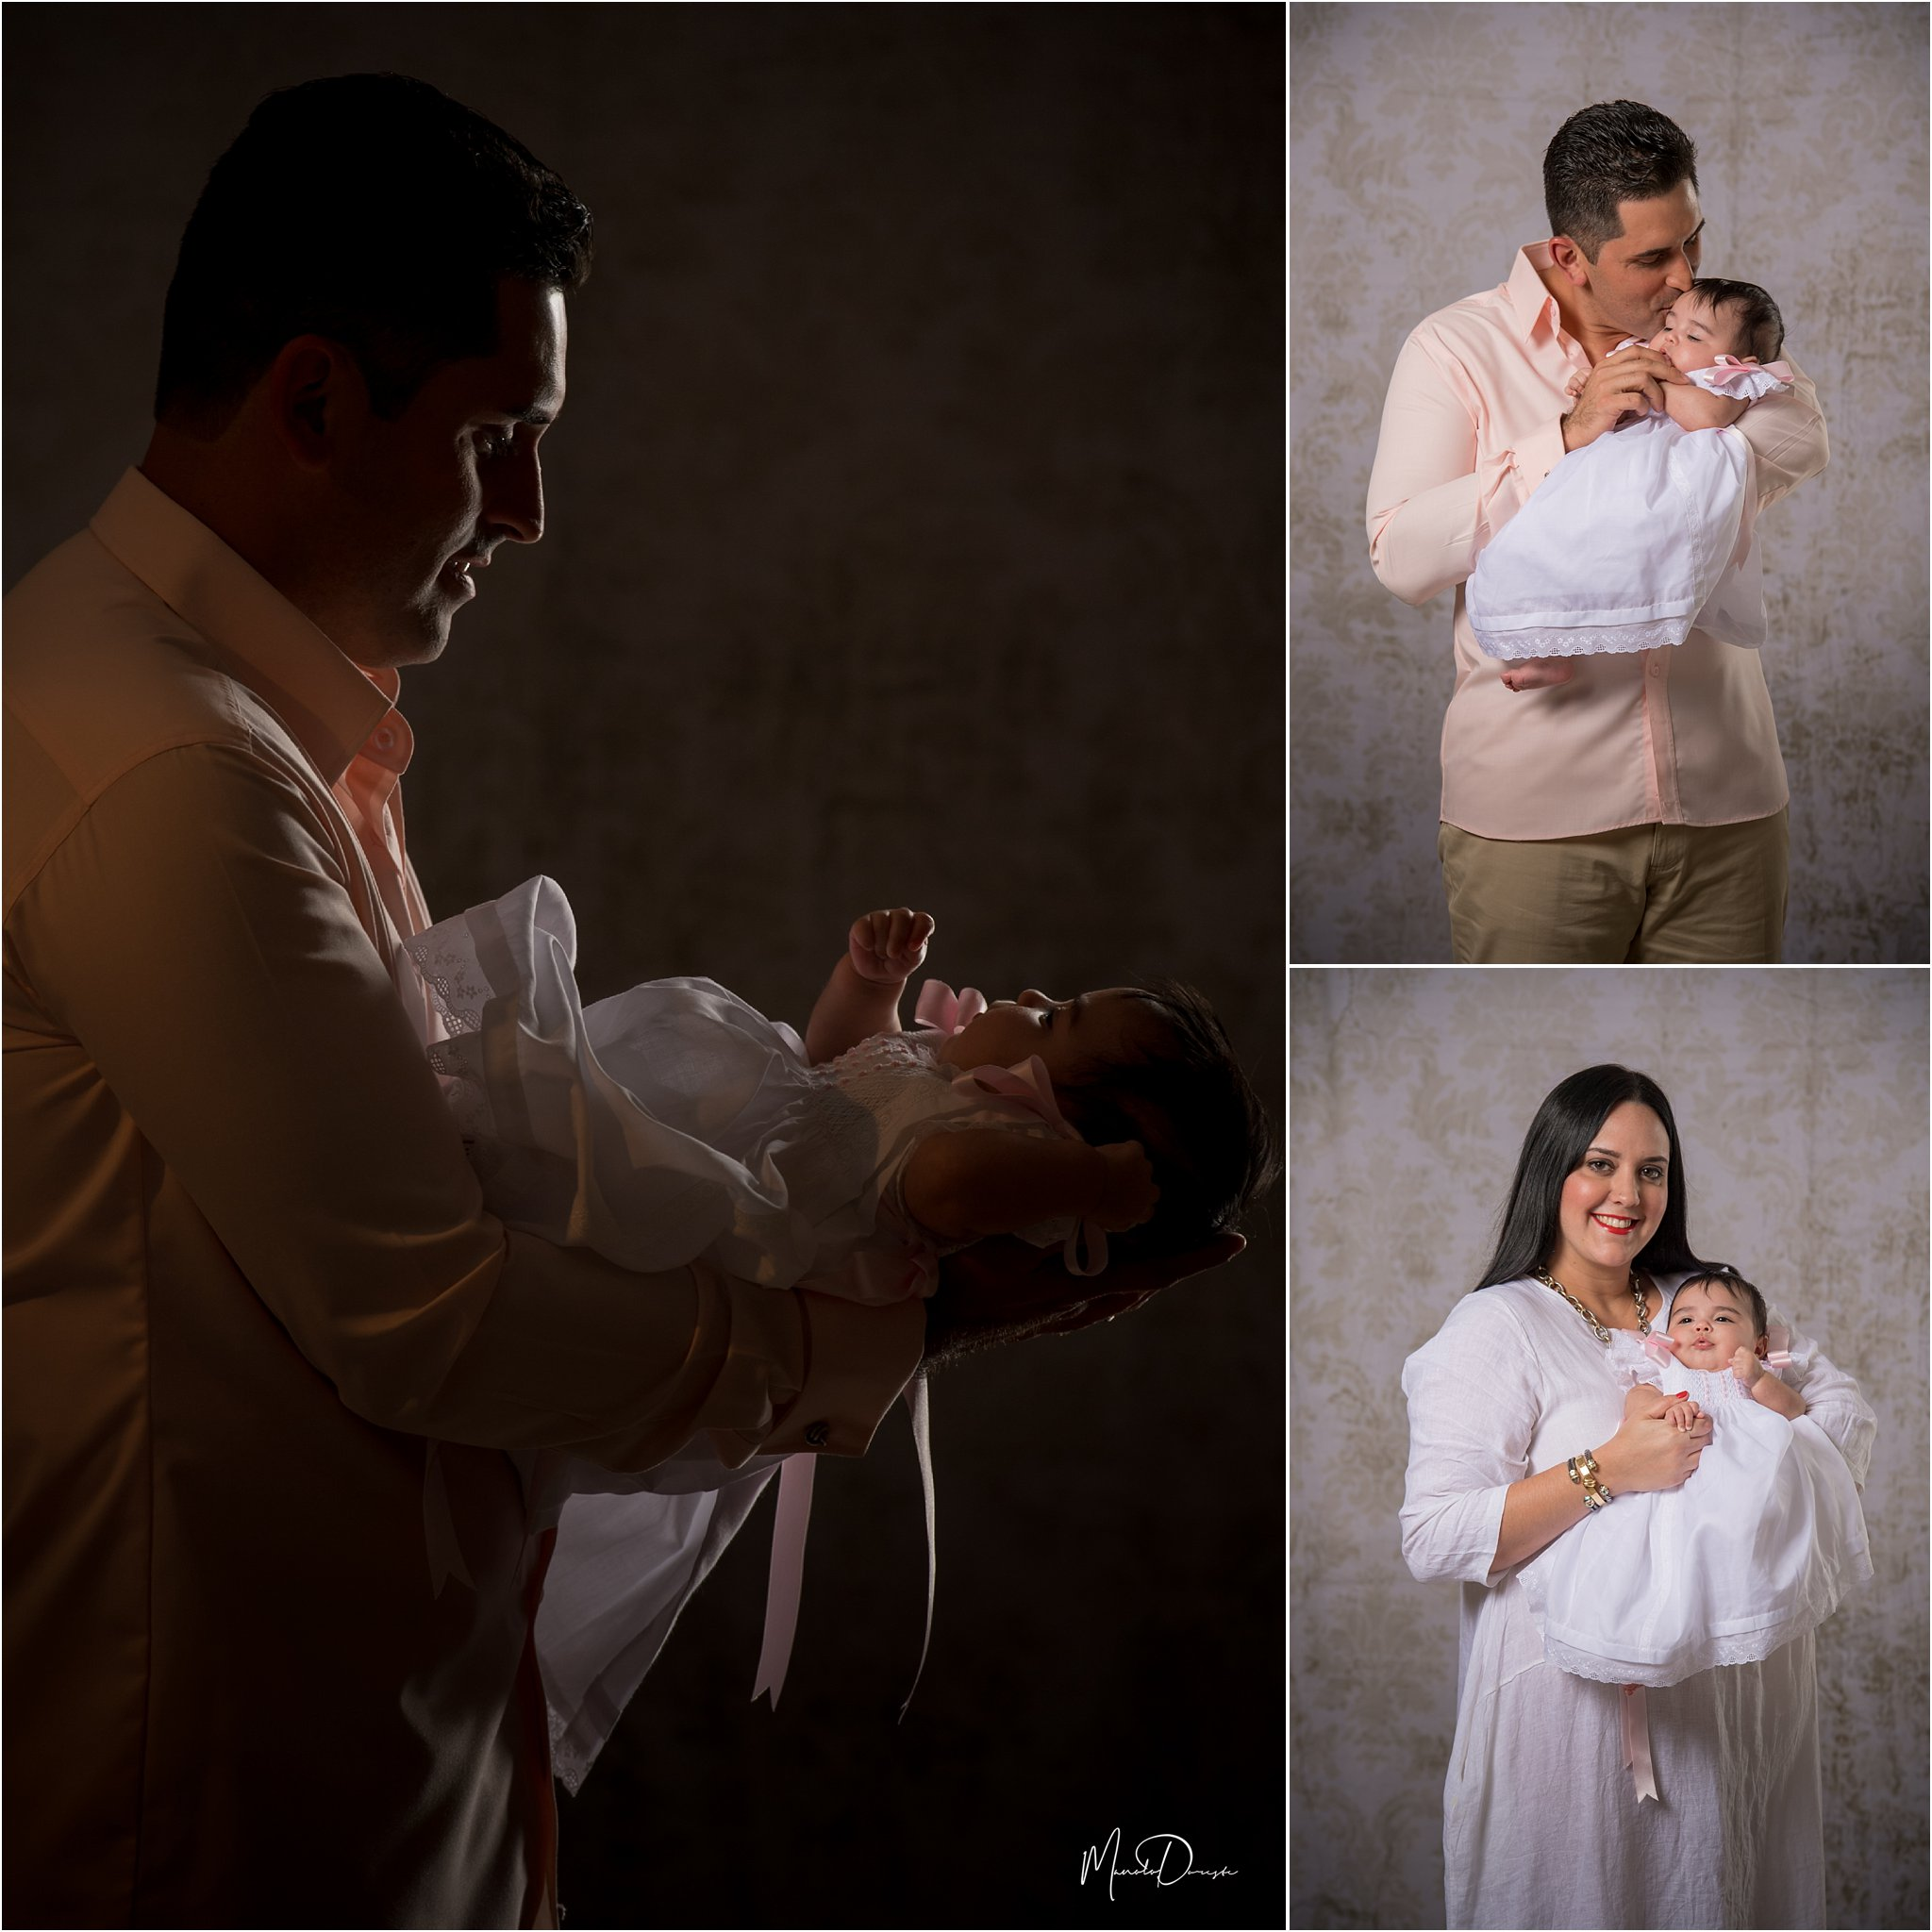 0214_ManoloDoreste_InFocusStudios_Wedding_Family_Photography_Miami_MiamiPhotographer.jpg